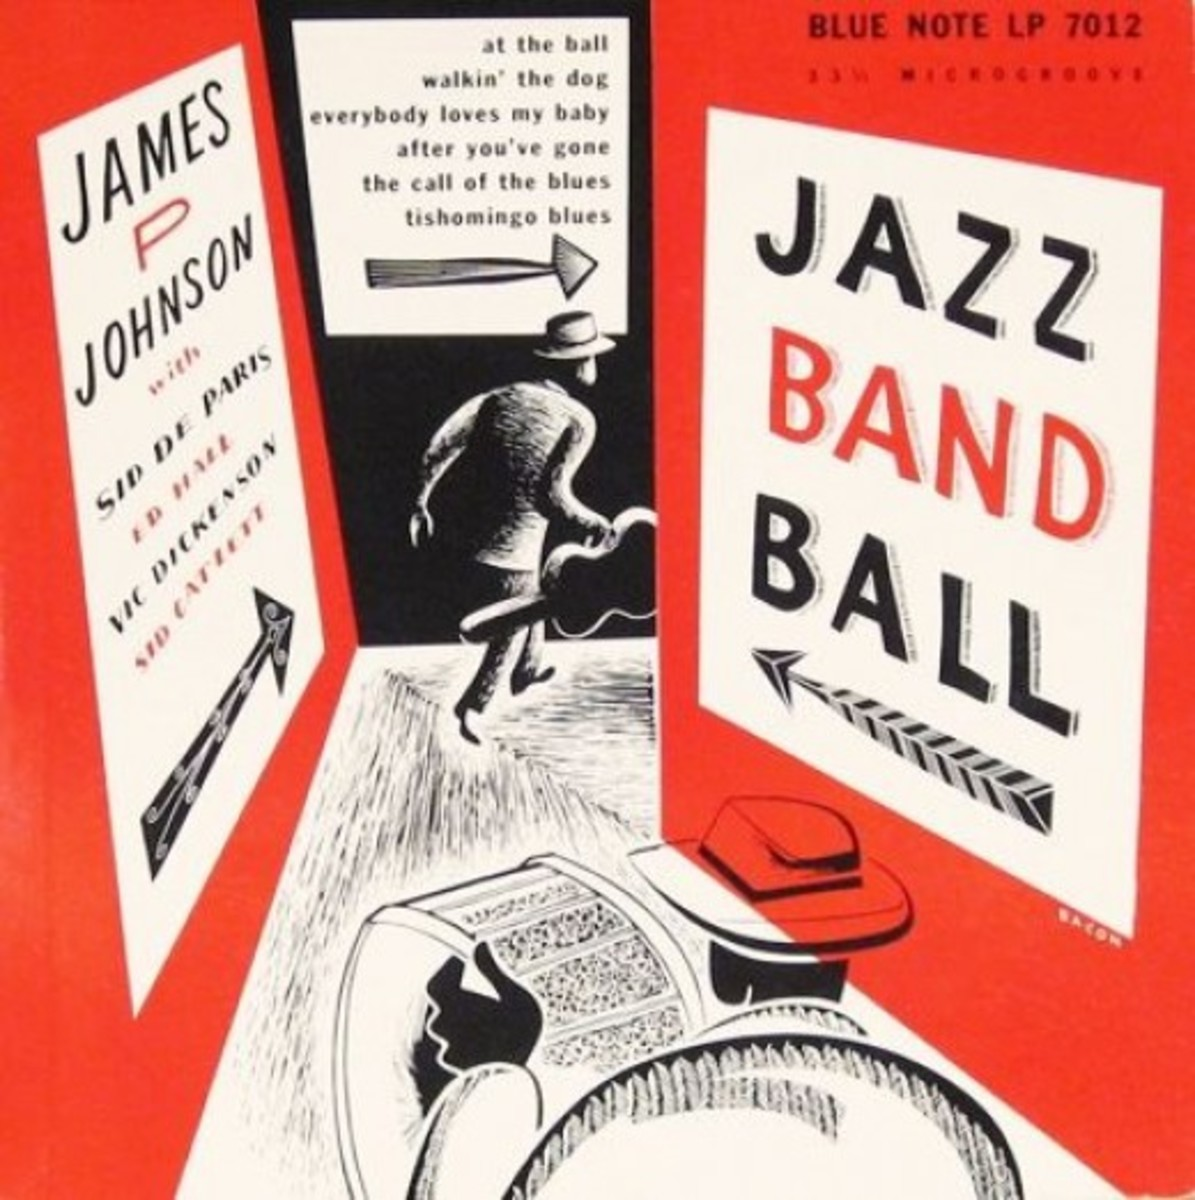 "James P Johnson ""Jazz Band Ball"" Blue Note LP 7012 10"" LP Vinyl Microgroove Record (1951) Album Cover Art & Design by Paul Bacon"